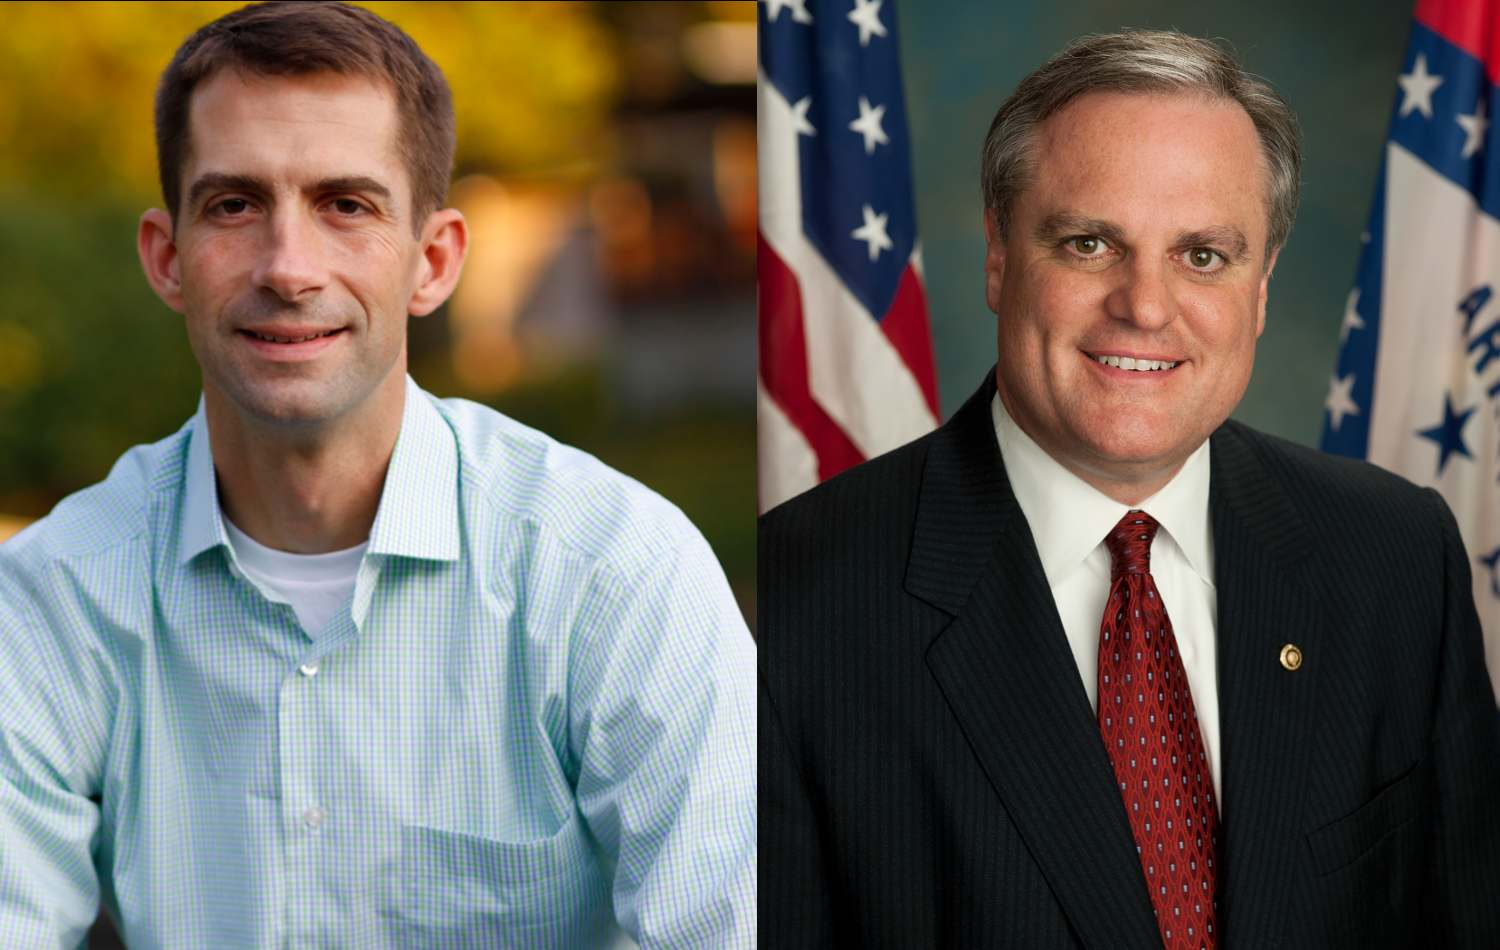 Tom Cotton and Mark Pryor are scheduled to debate Oct. 14, 2014, at the University of Arkansas.